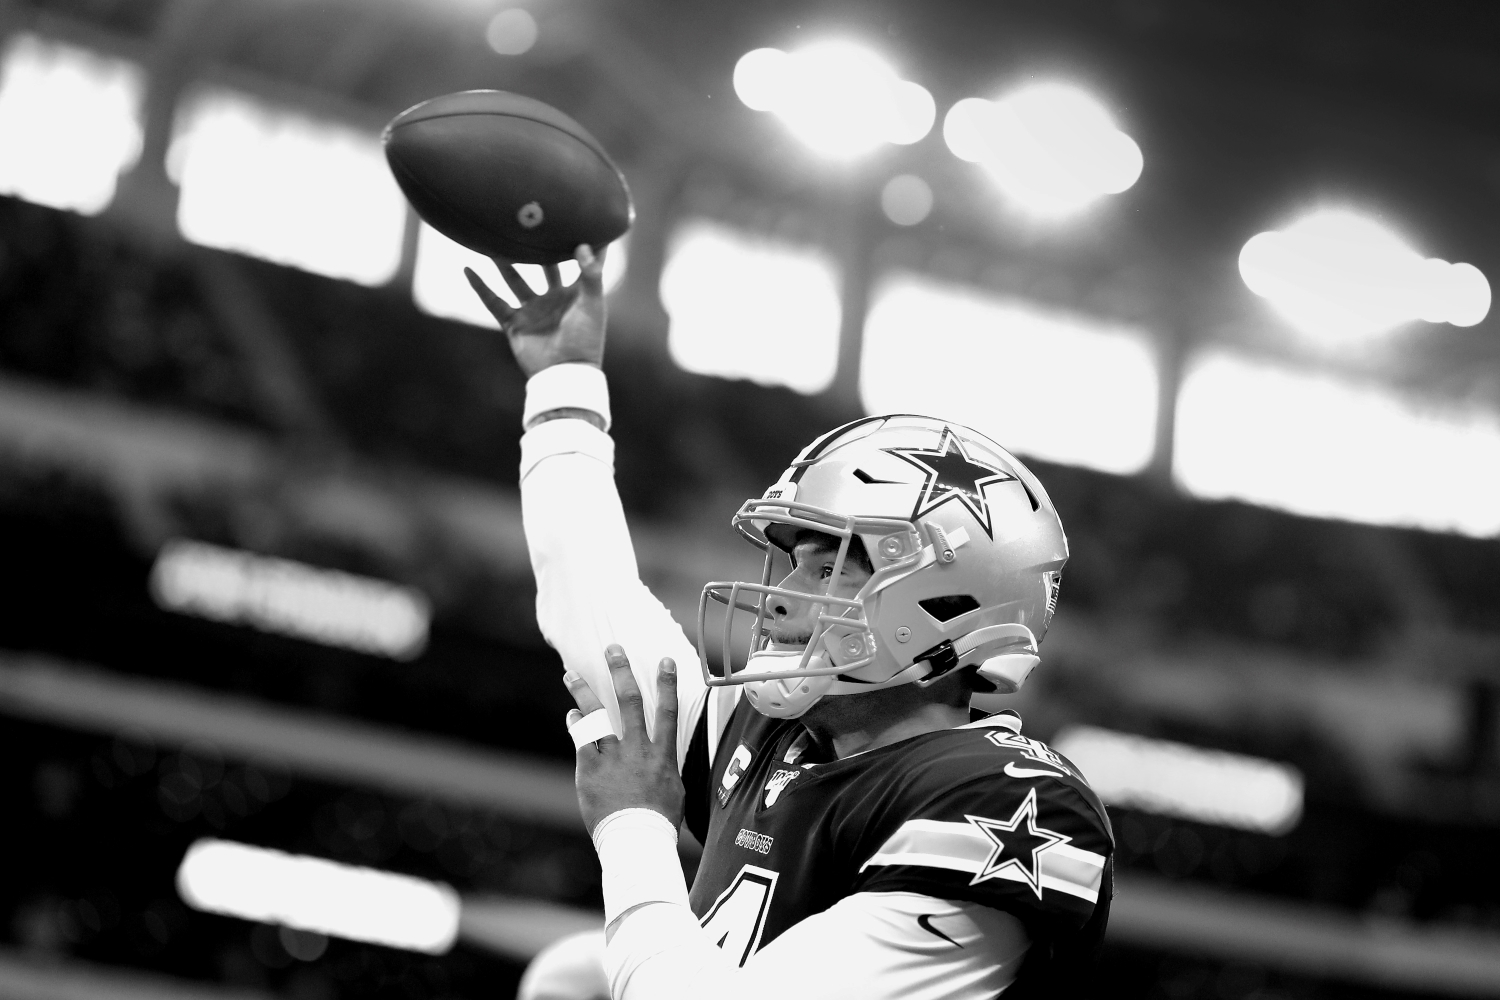 Dak Prescott warms up for the Dallas Cowboys before a game against the LA Rams in 2019.